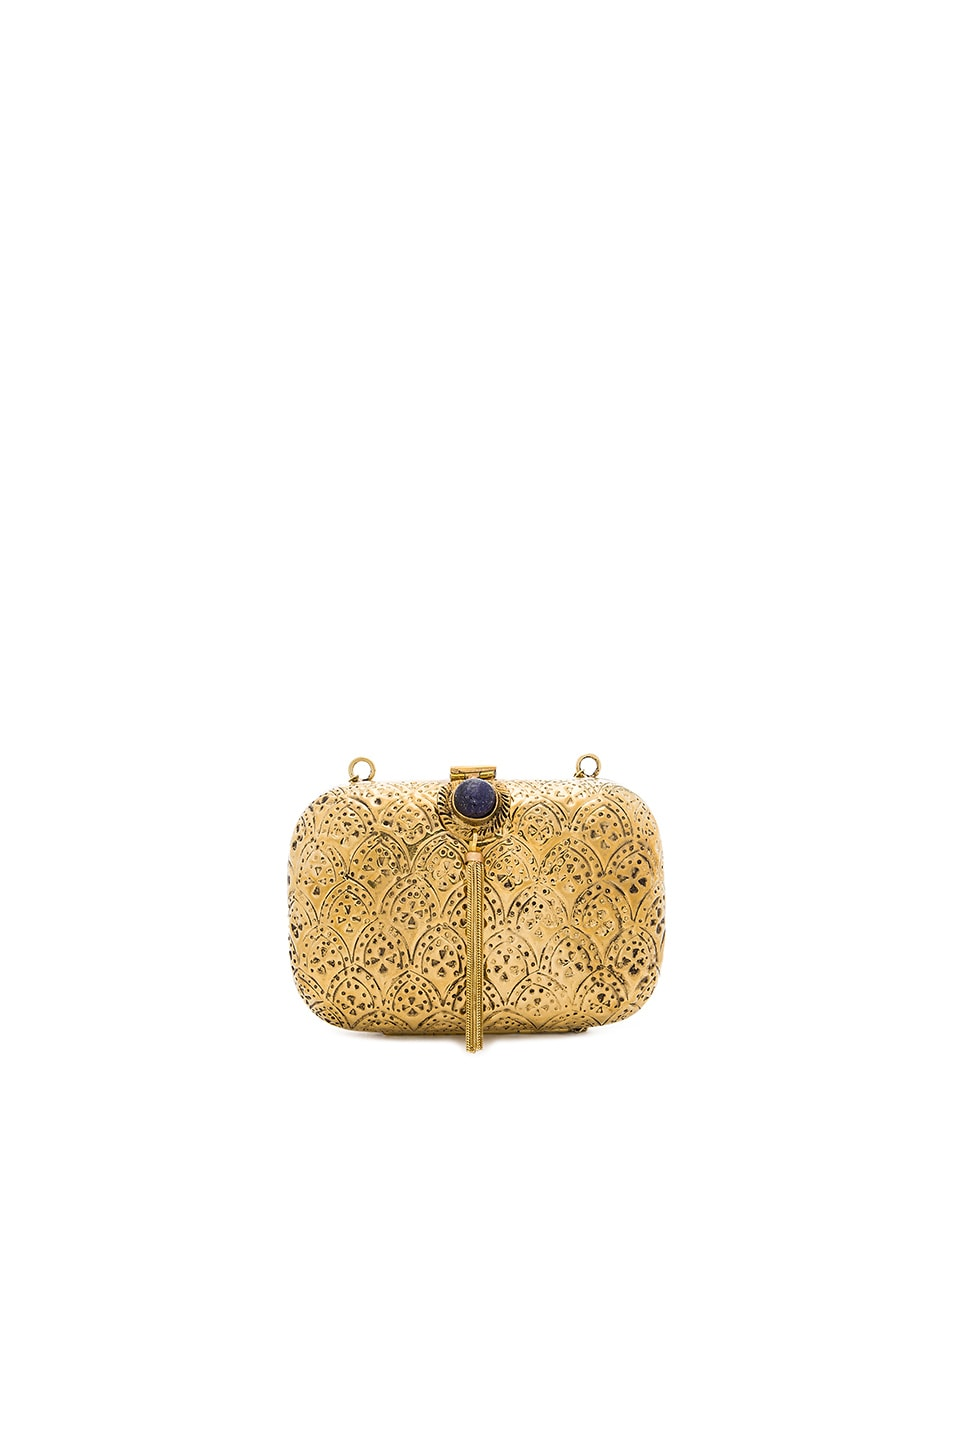 From St Xavier Tasha Clutch in Gold